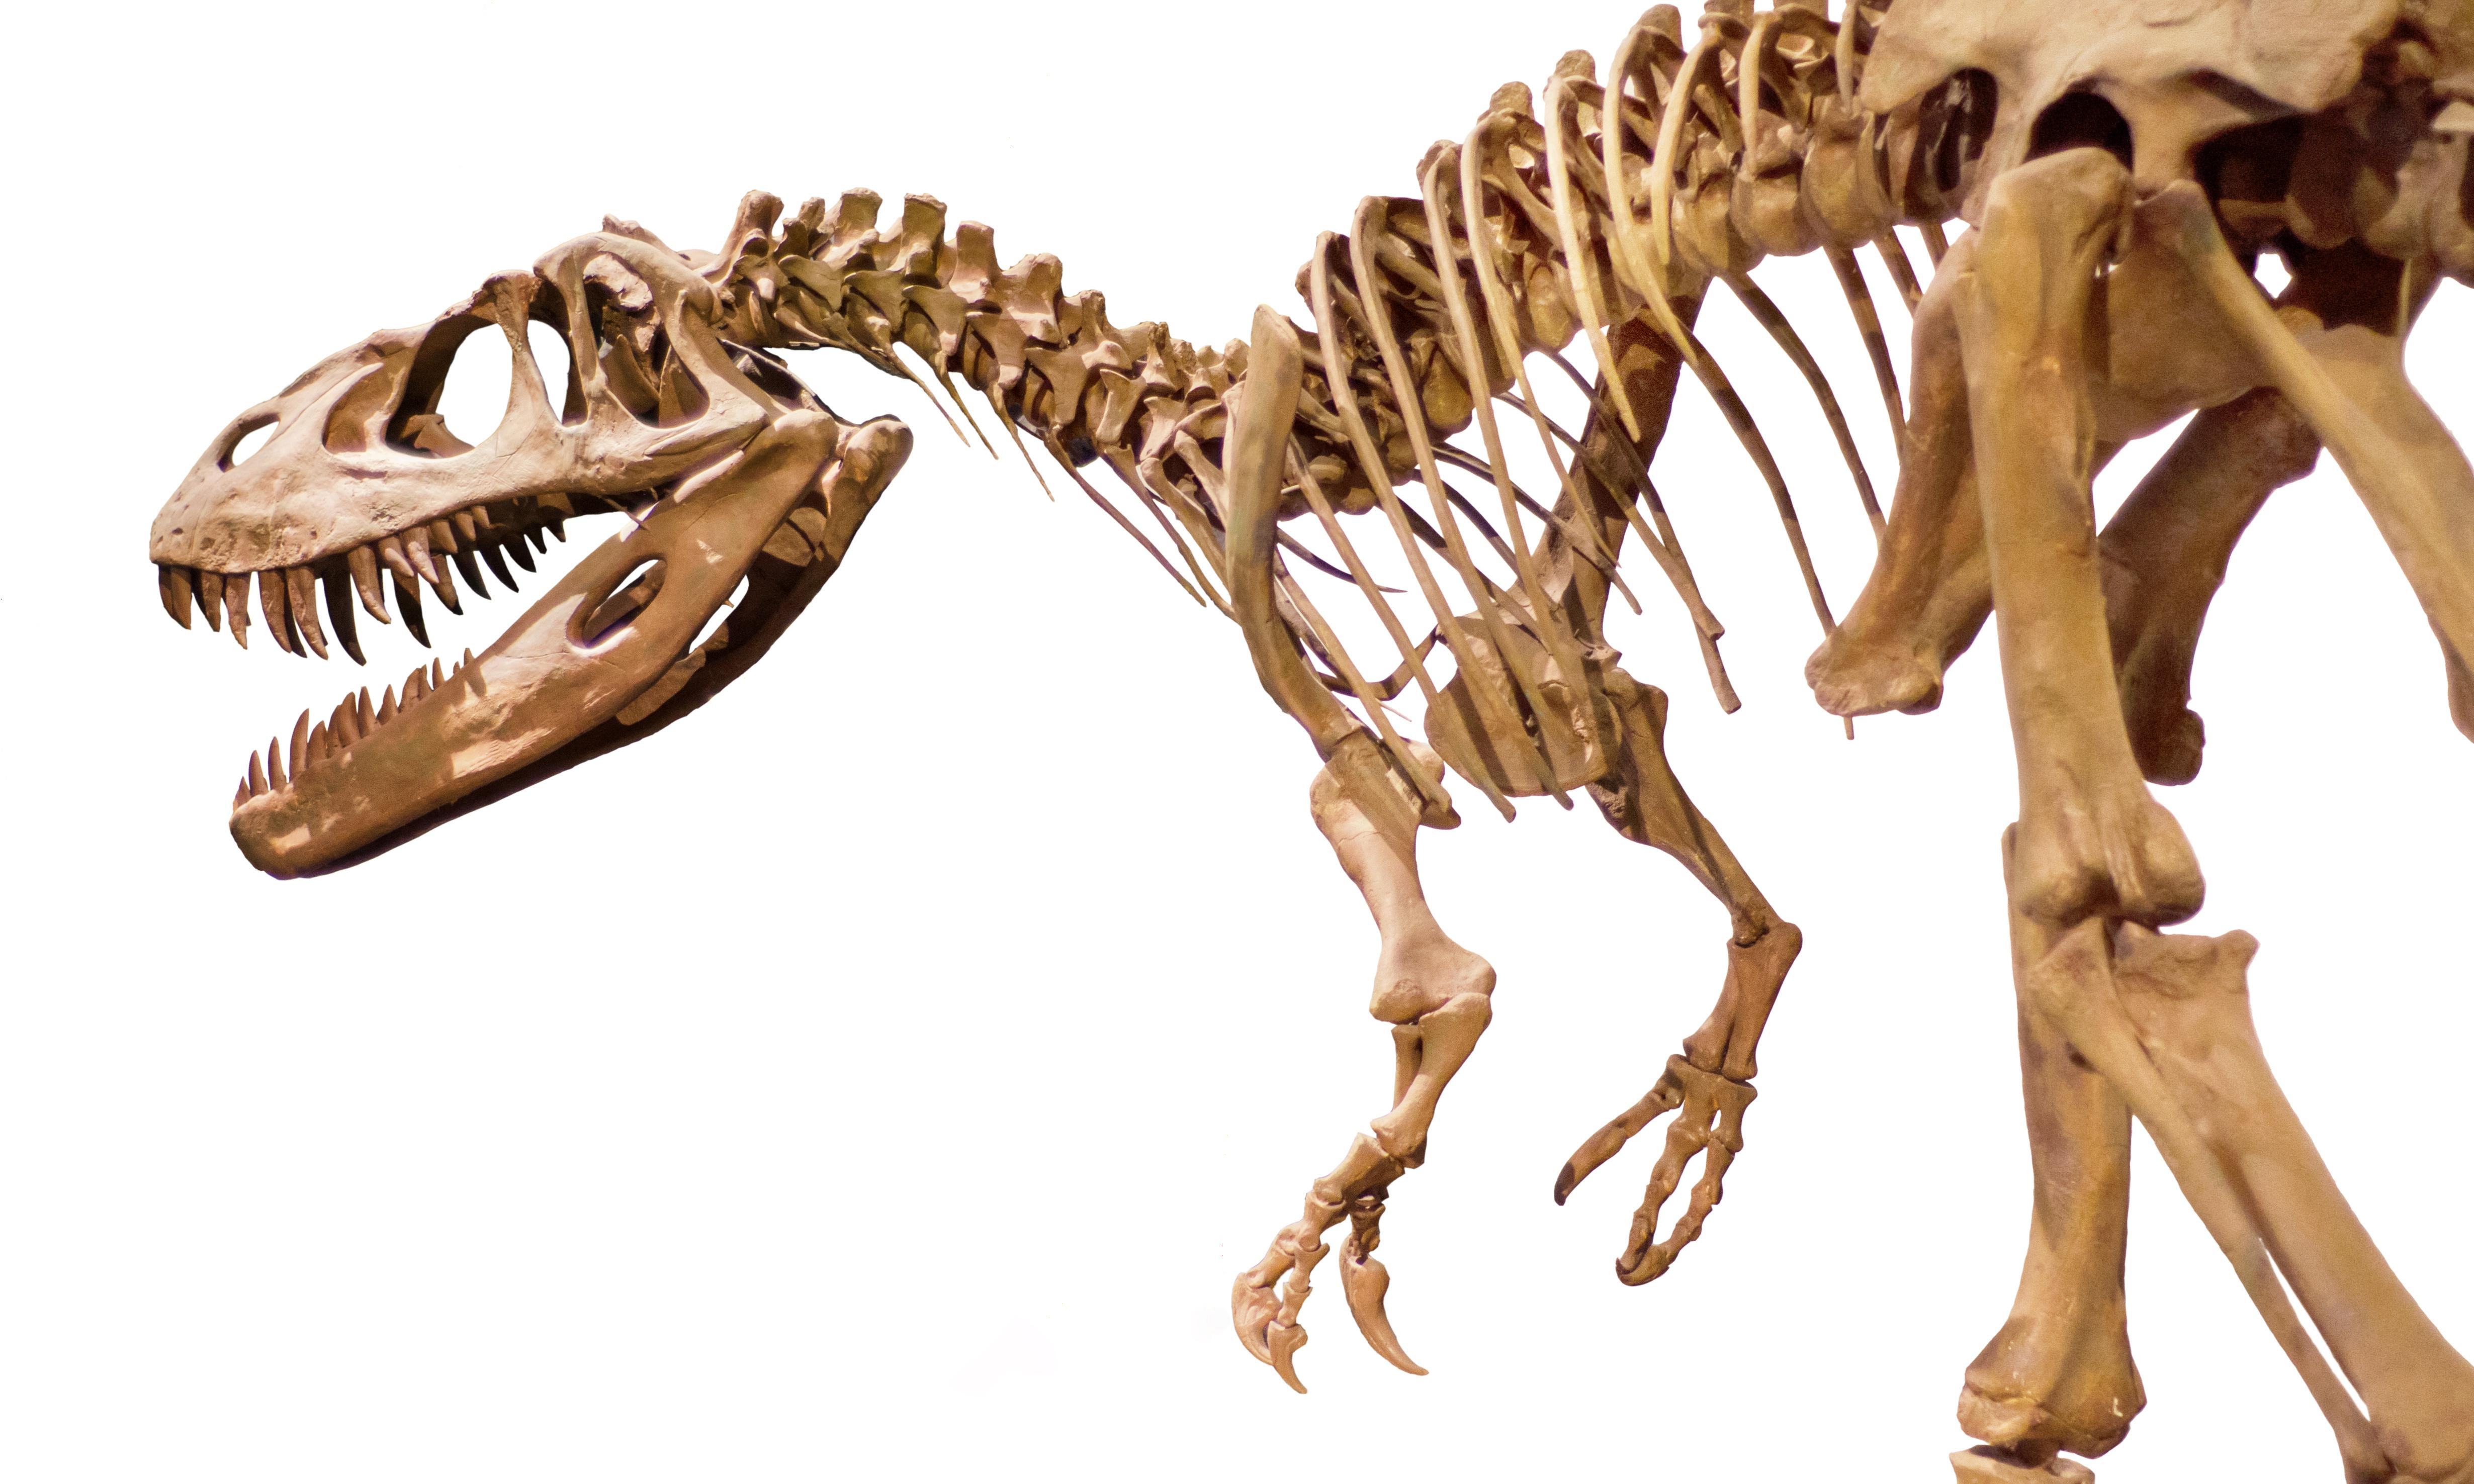 T rex traders: should the sale of dinosaur bones be stopped?